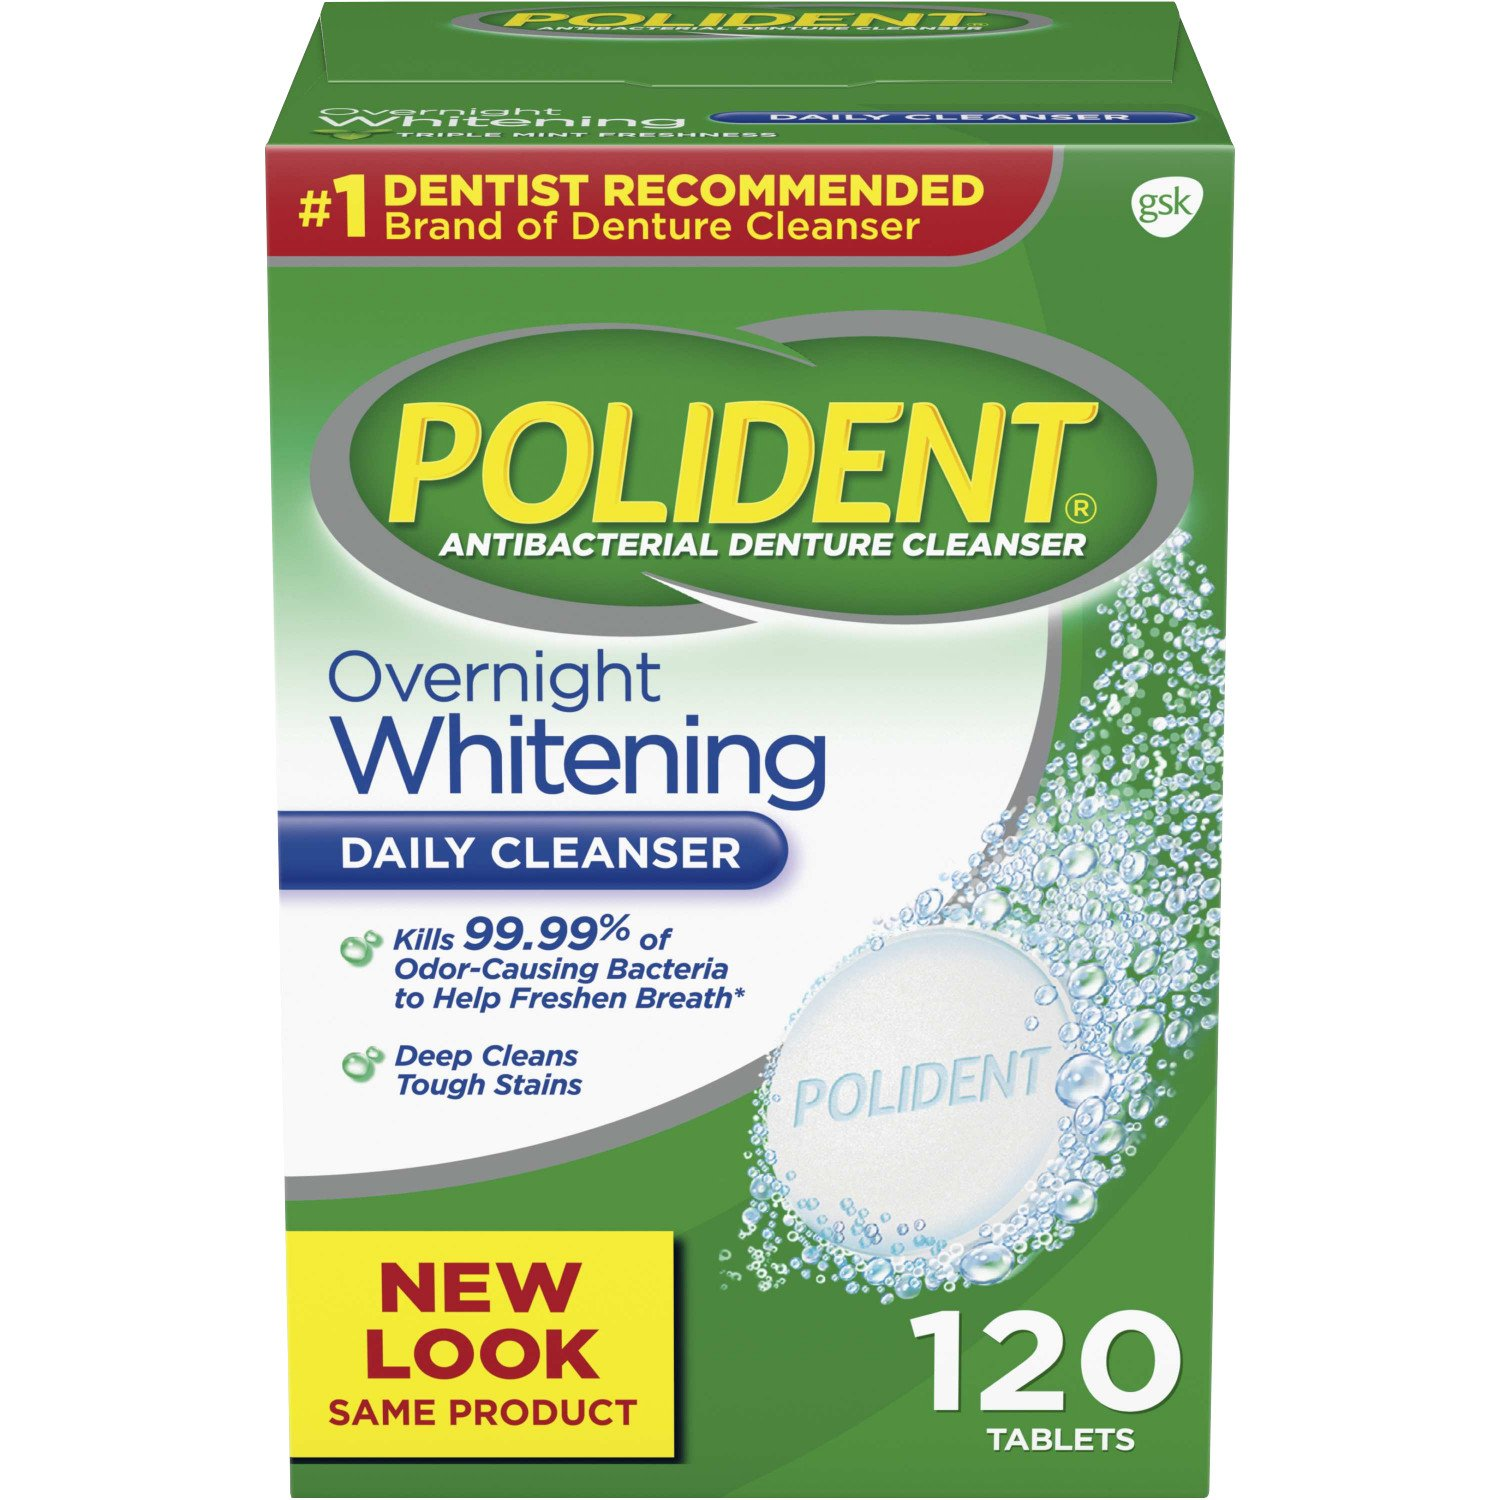 Polident Overnight Whitening Antibacterial Denture Cleanser Effervescent Tablets, 120 count: Health & Personal Care